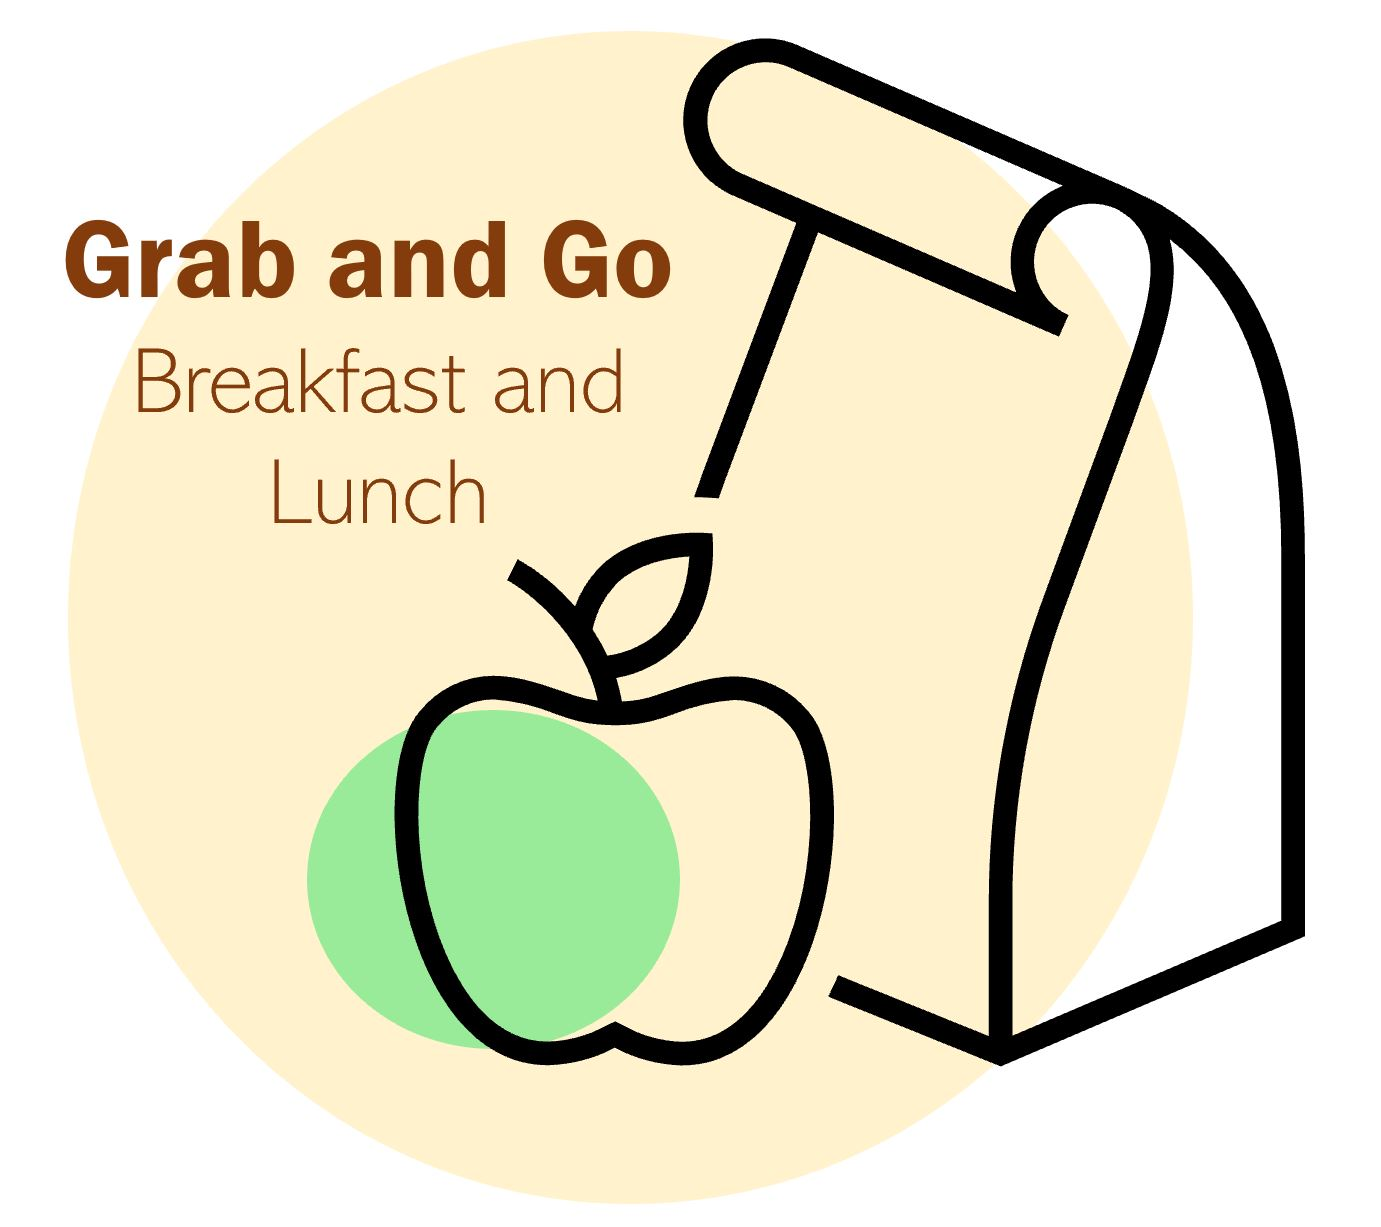 This image will serve as a reminder of grab and go breakfast and lunch